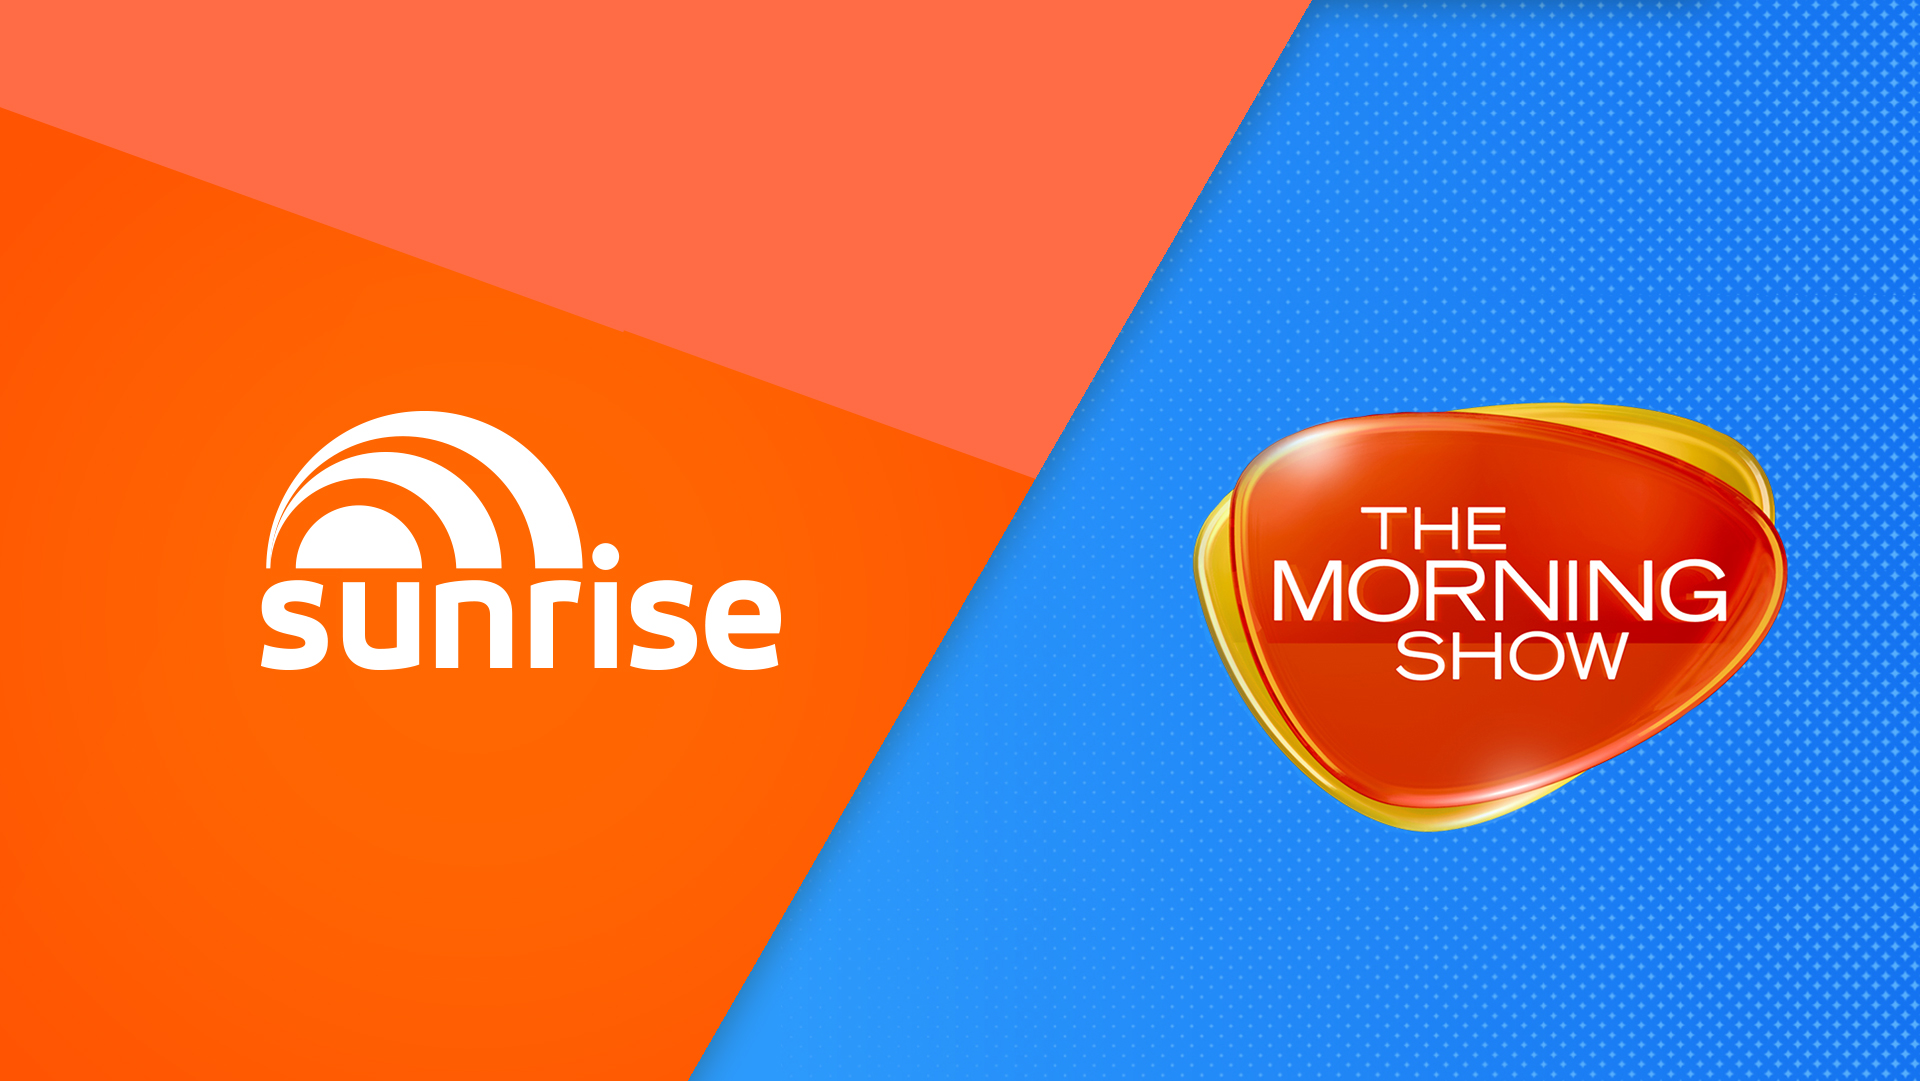 Sunrise and The Morning Show on top